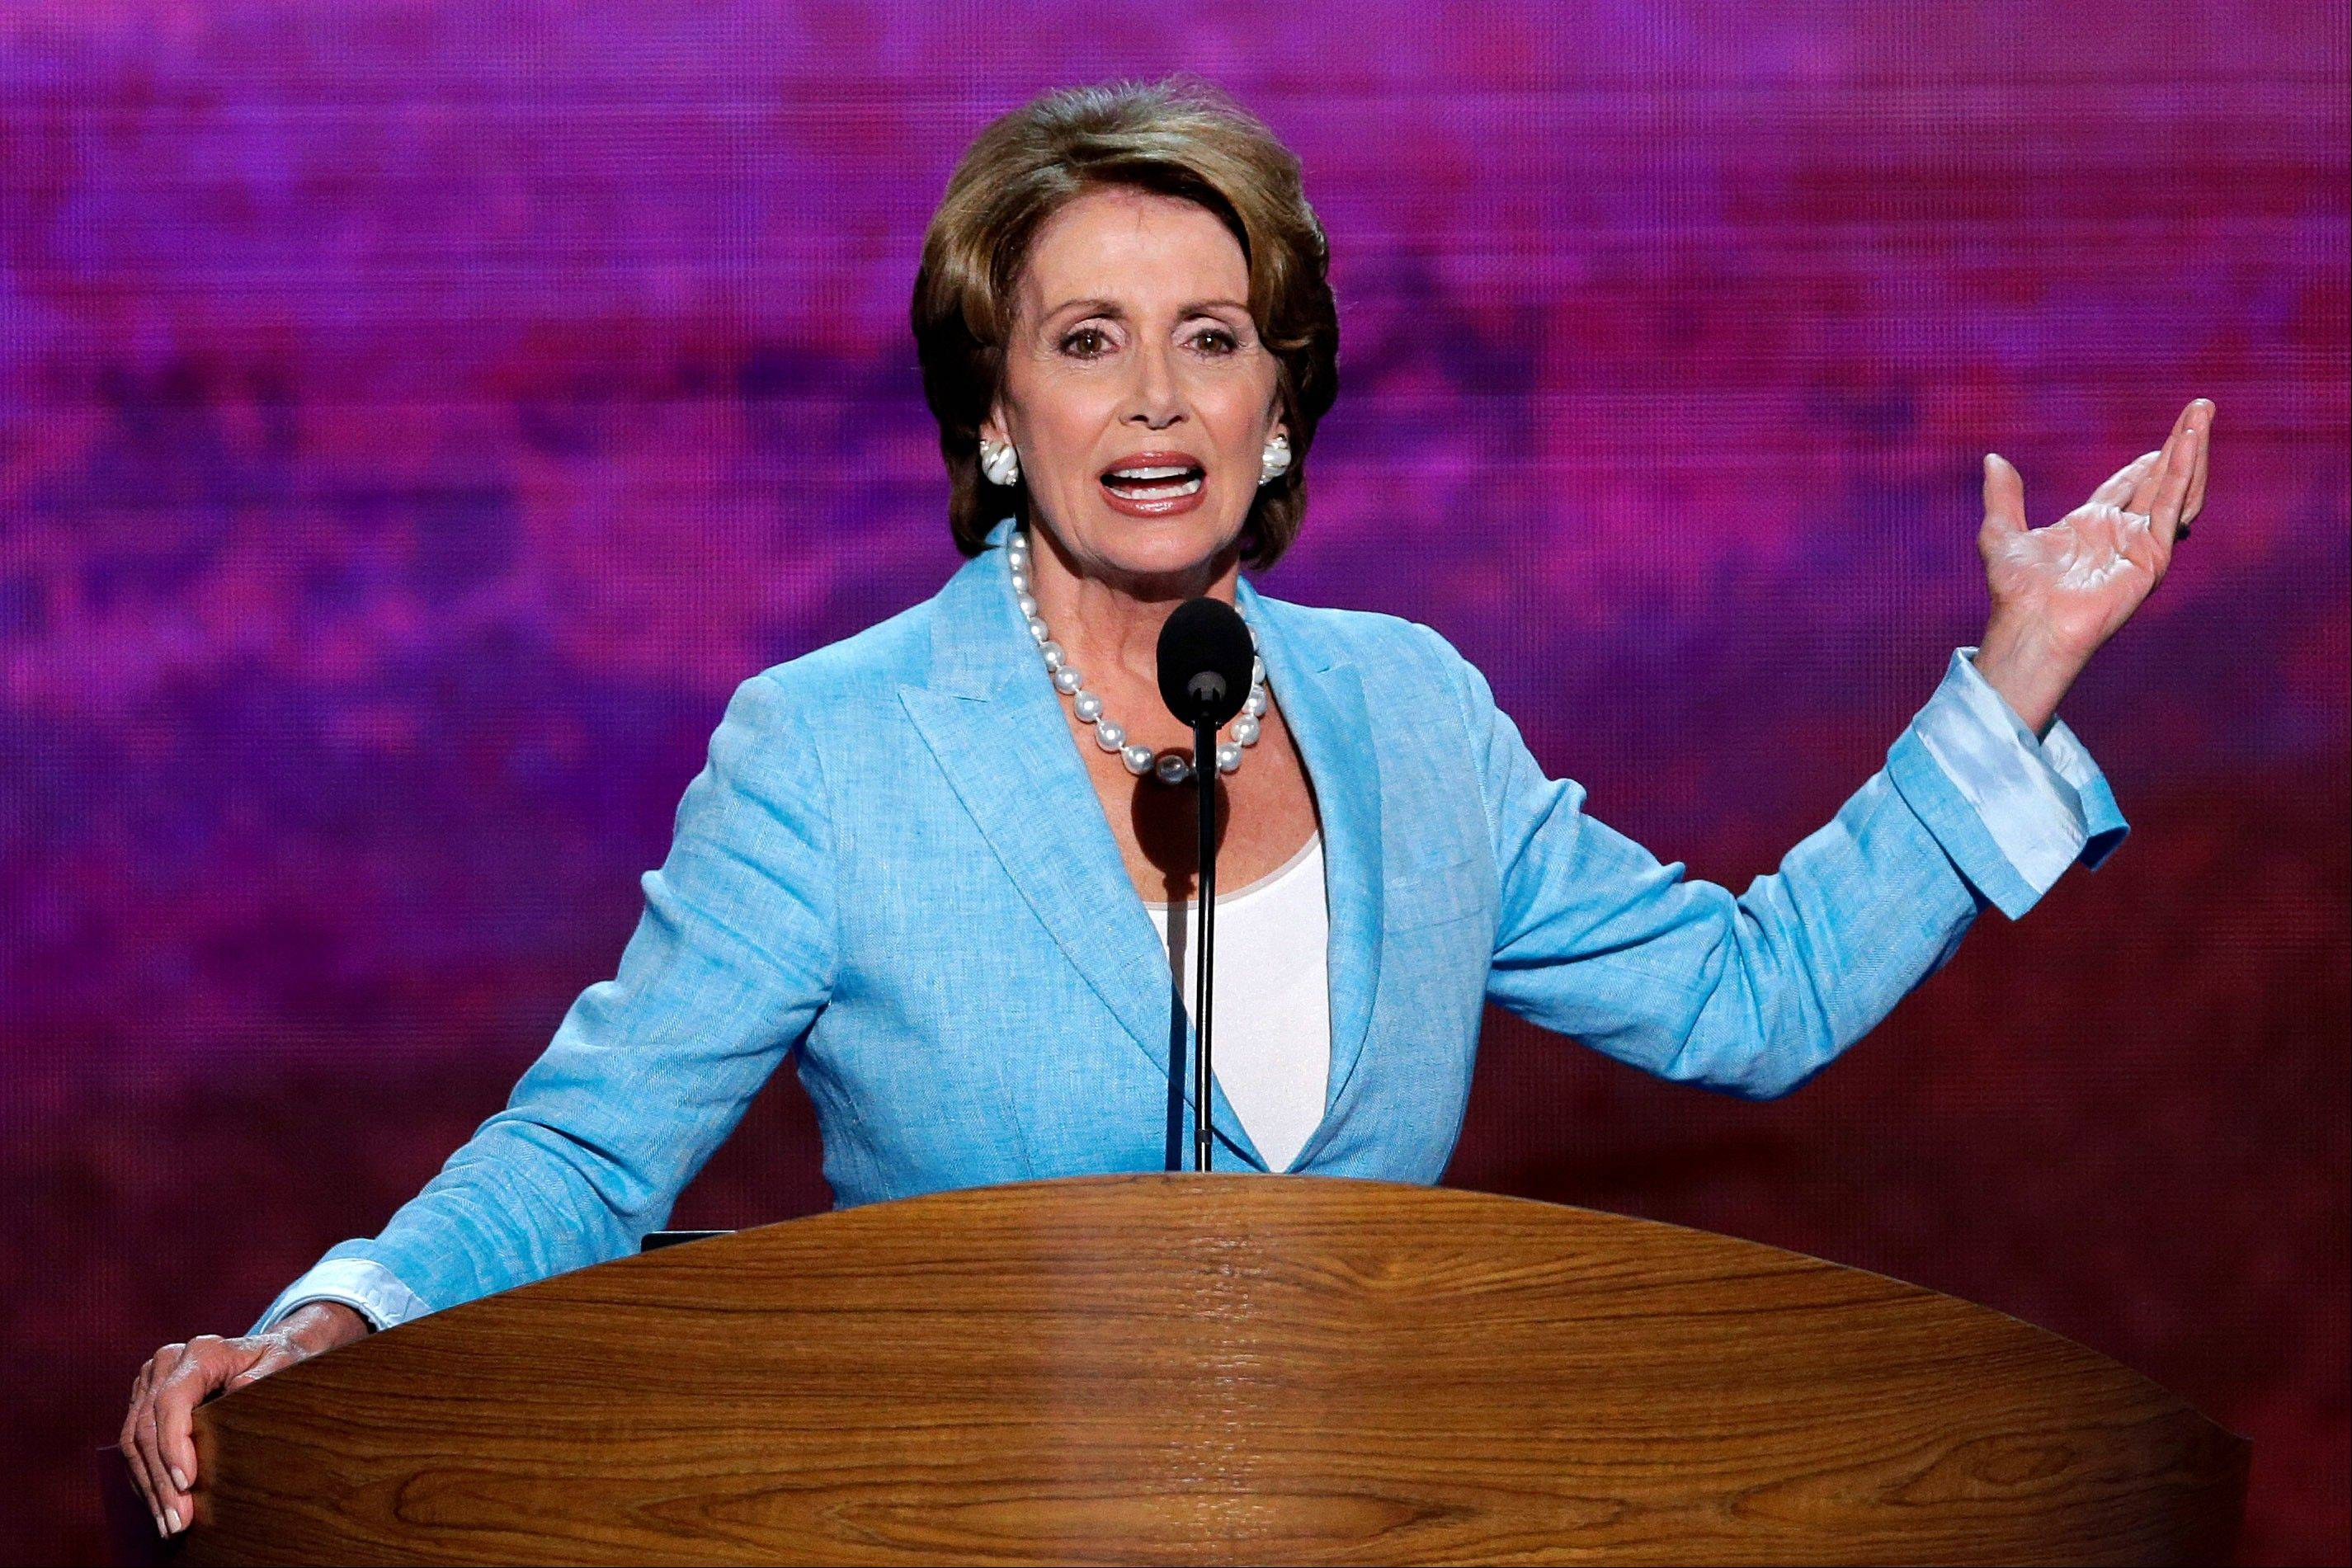 House Minority Leader Nancy Pelosi addresses the Democratic National Convention in Charlotte, N.C., on Wednesday, Sept. 5, 2012.